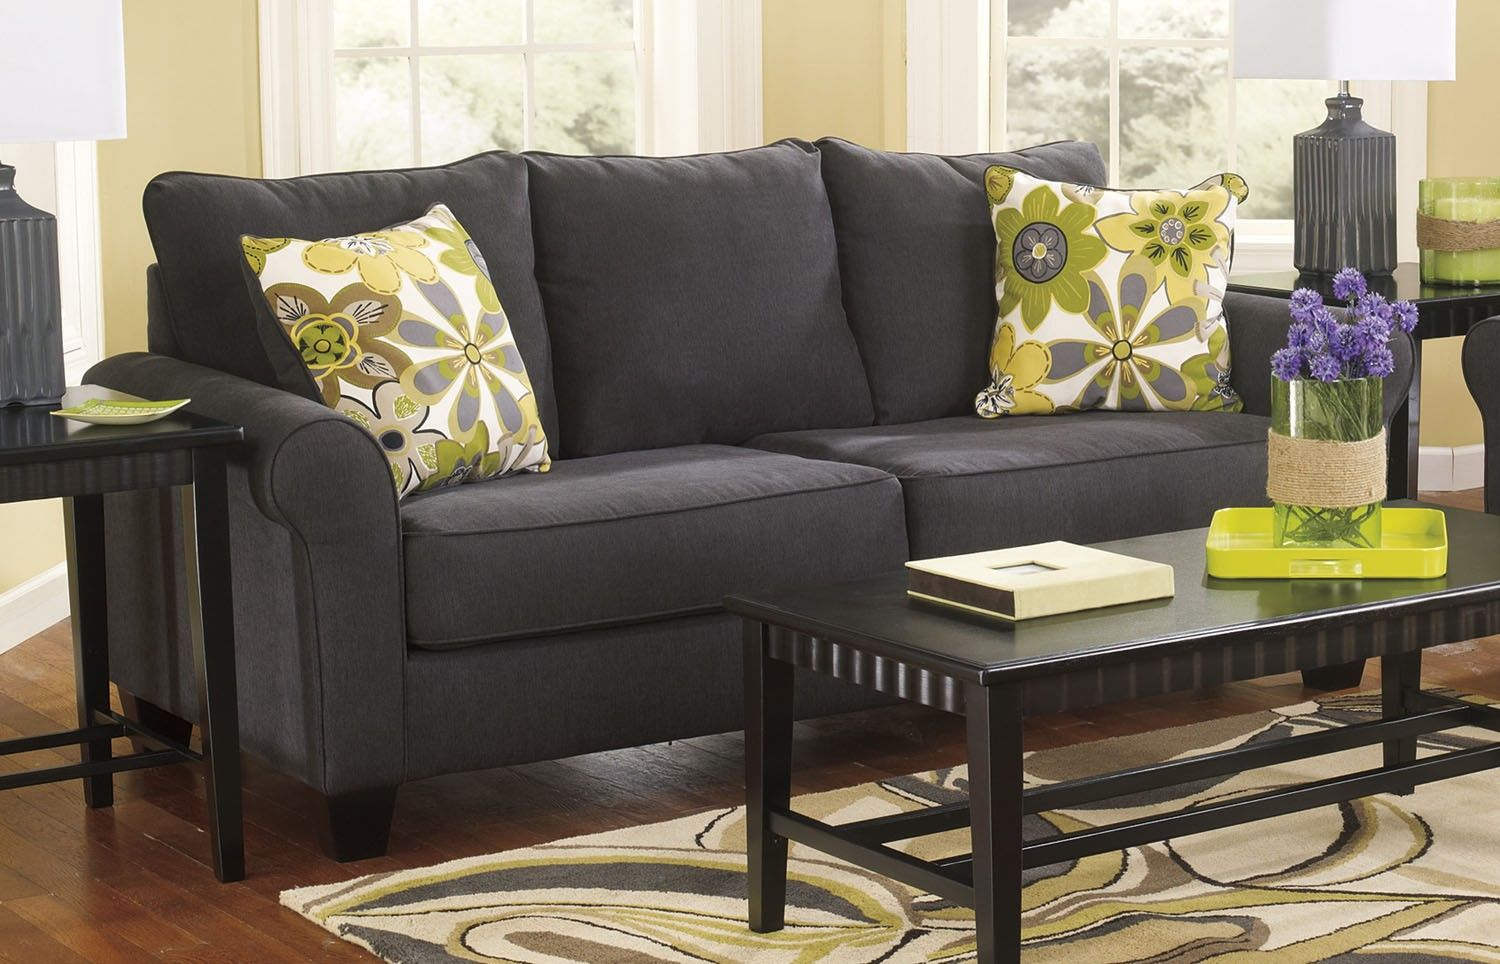 discontinued ashley sofa tables cushion covers target nolana charcoal plush modern marjen of